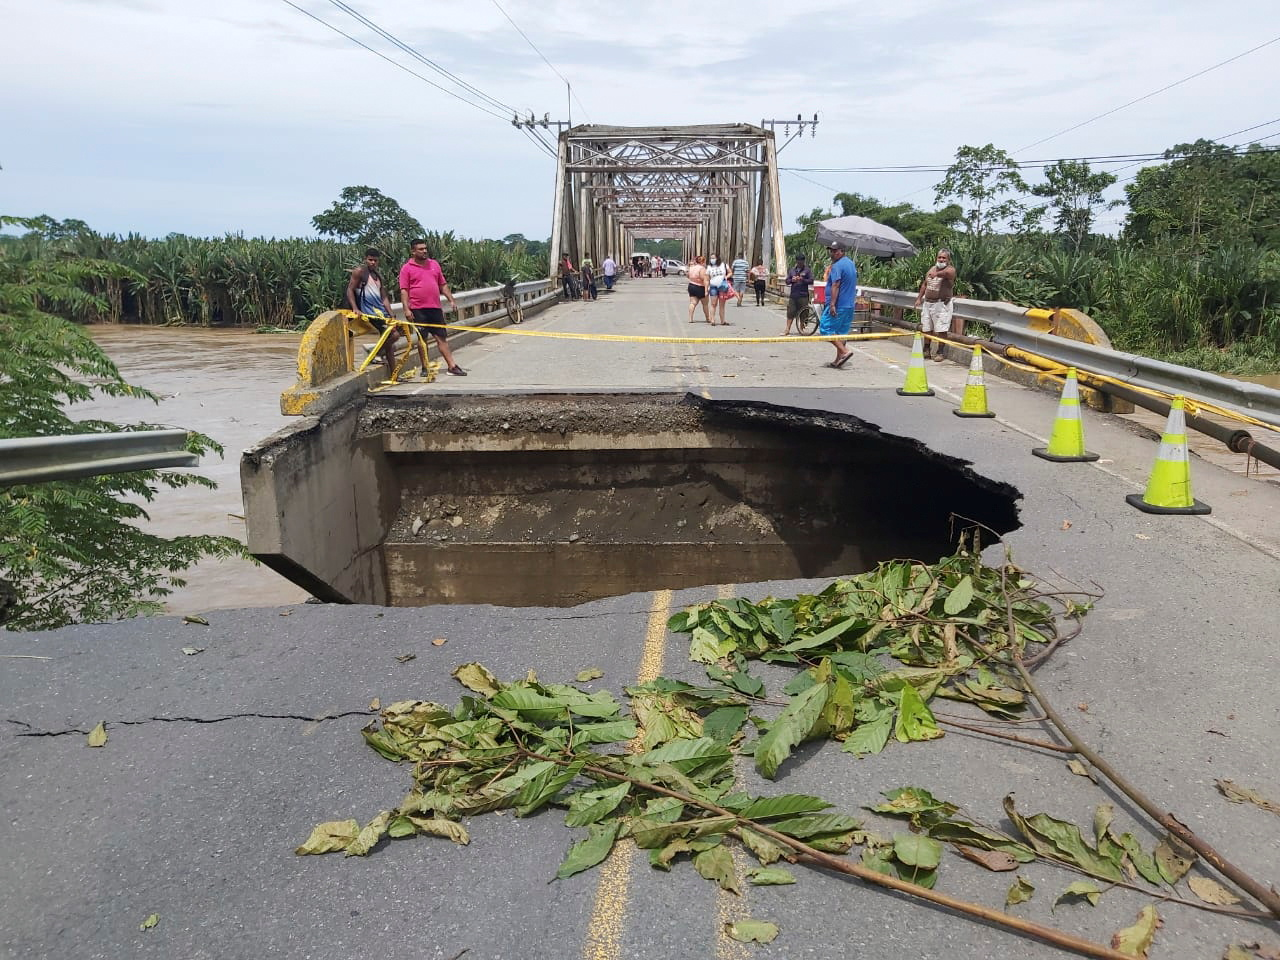 People stand on a bridge over La Estrella river damaged by floods due to heavy rains, in Limon, Costa Rica July 26, 2021. Costa Rica's Presidency/Handout via REUTERS